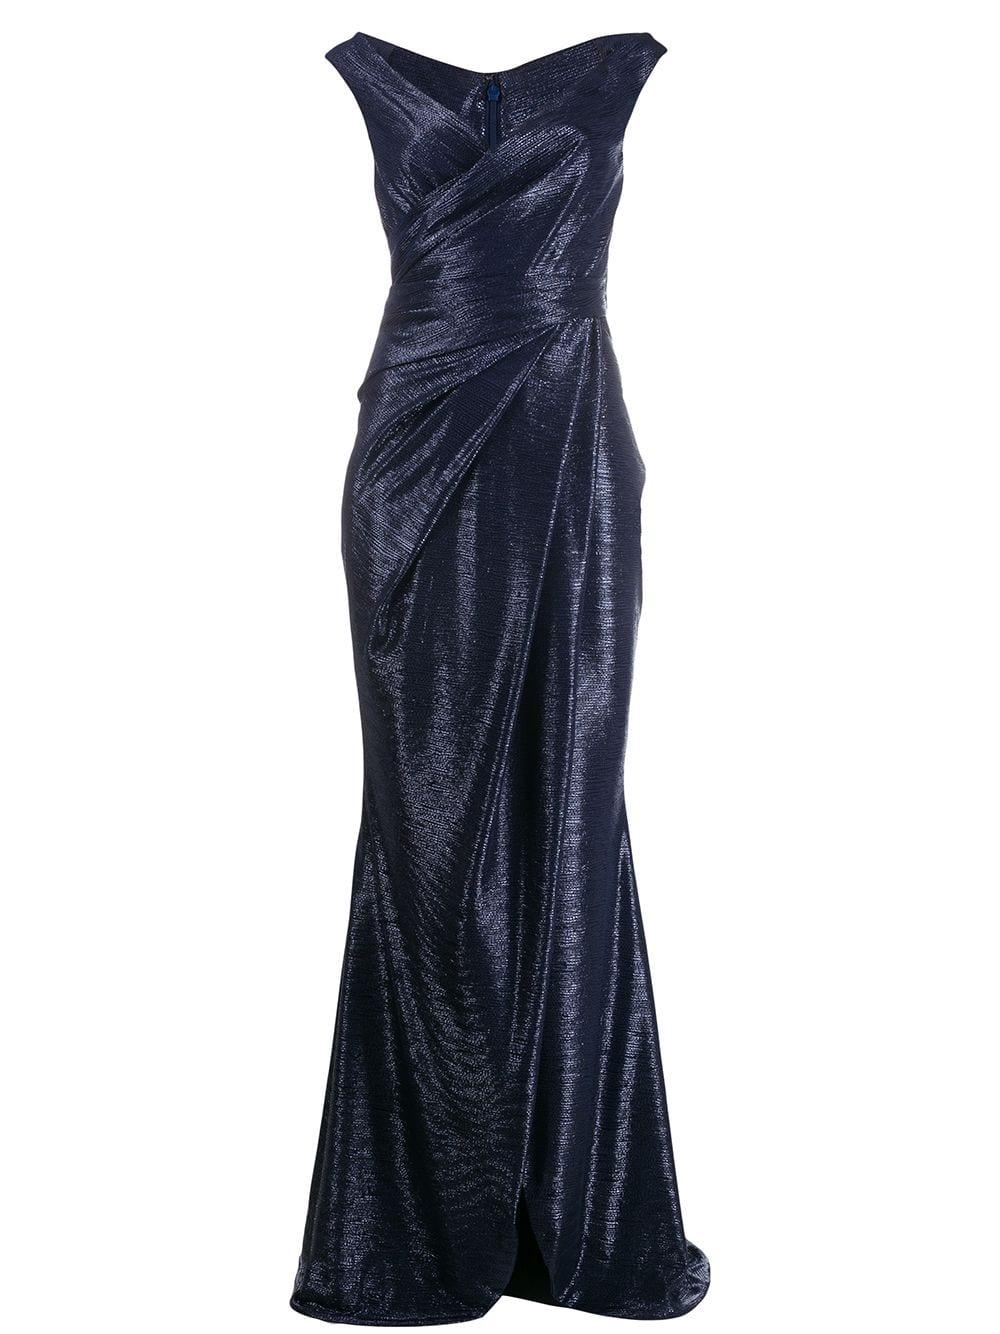 Sleeve Less Off Shoulder Mirrorball Satin Gown